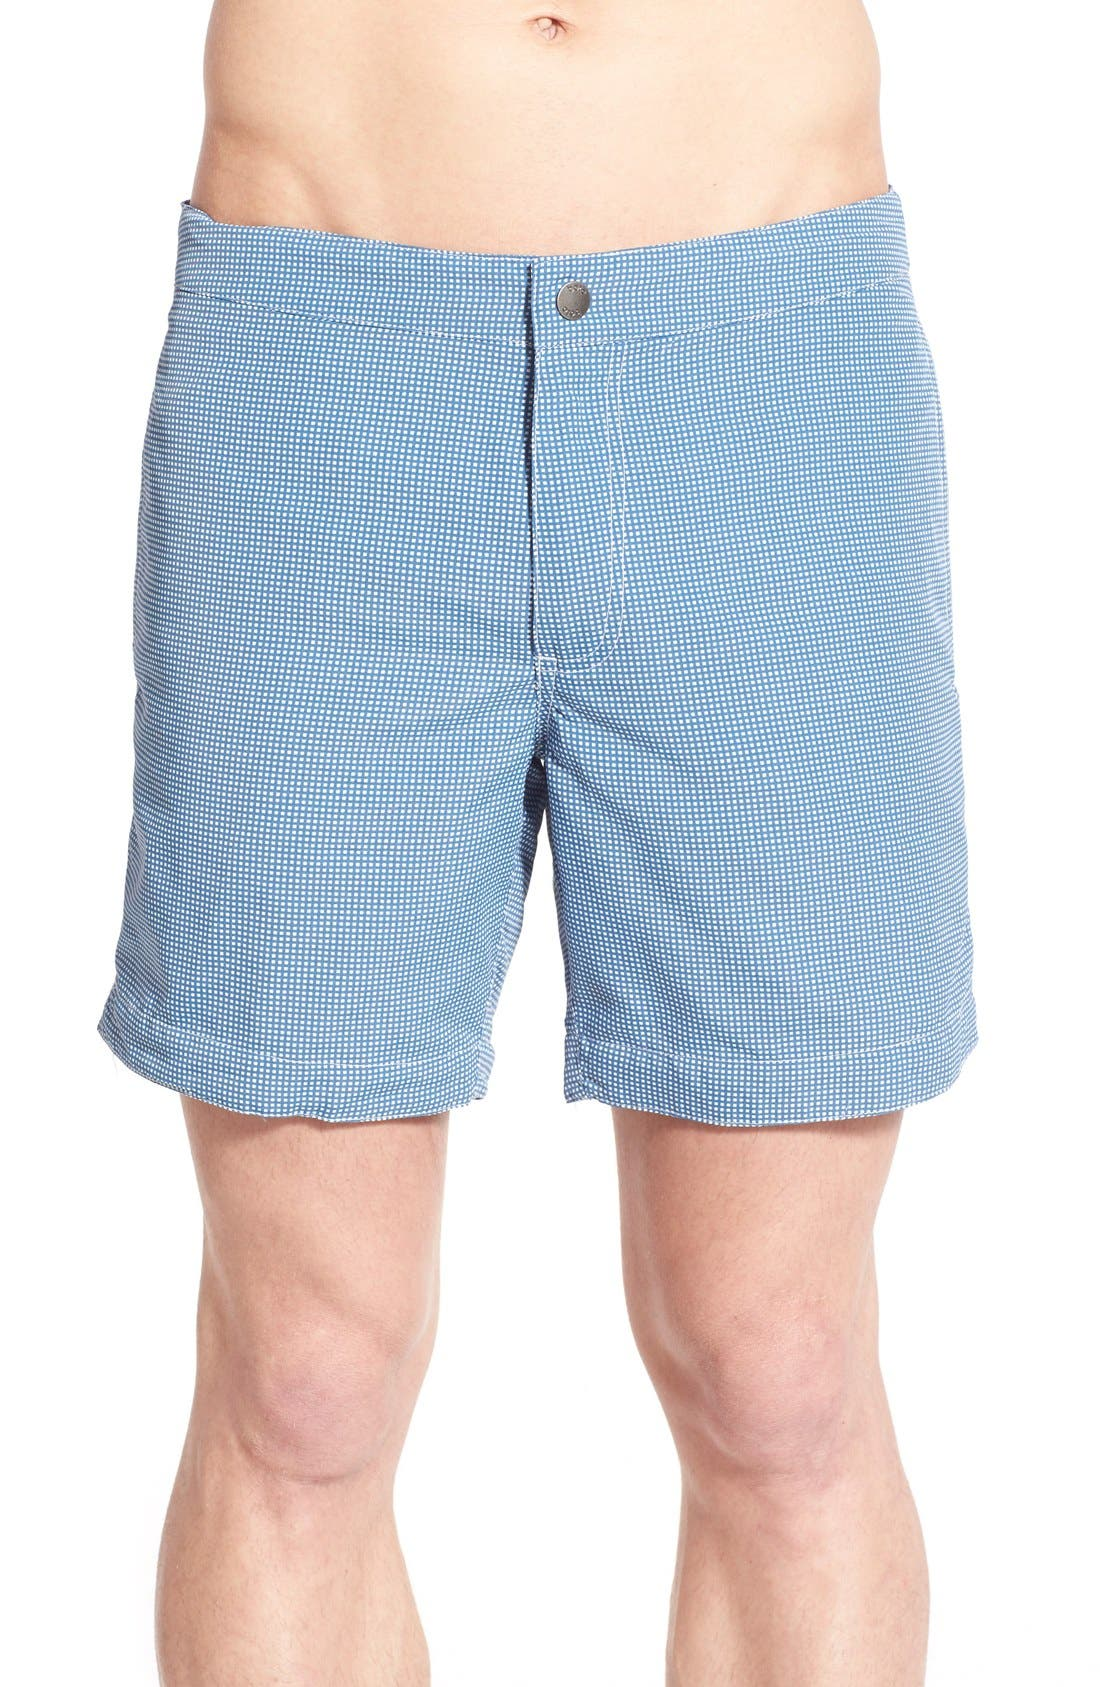 BOTO Aruba Tailored Fit Microcheck Swim Trunks